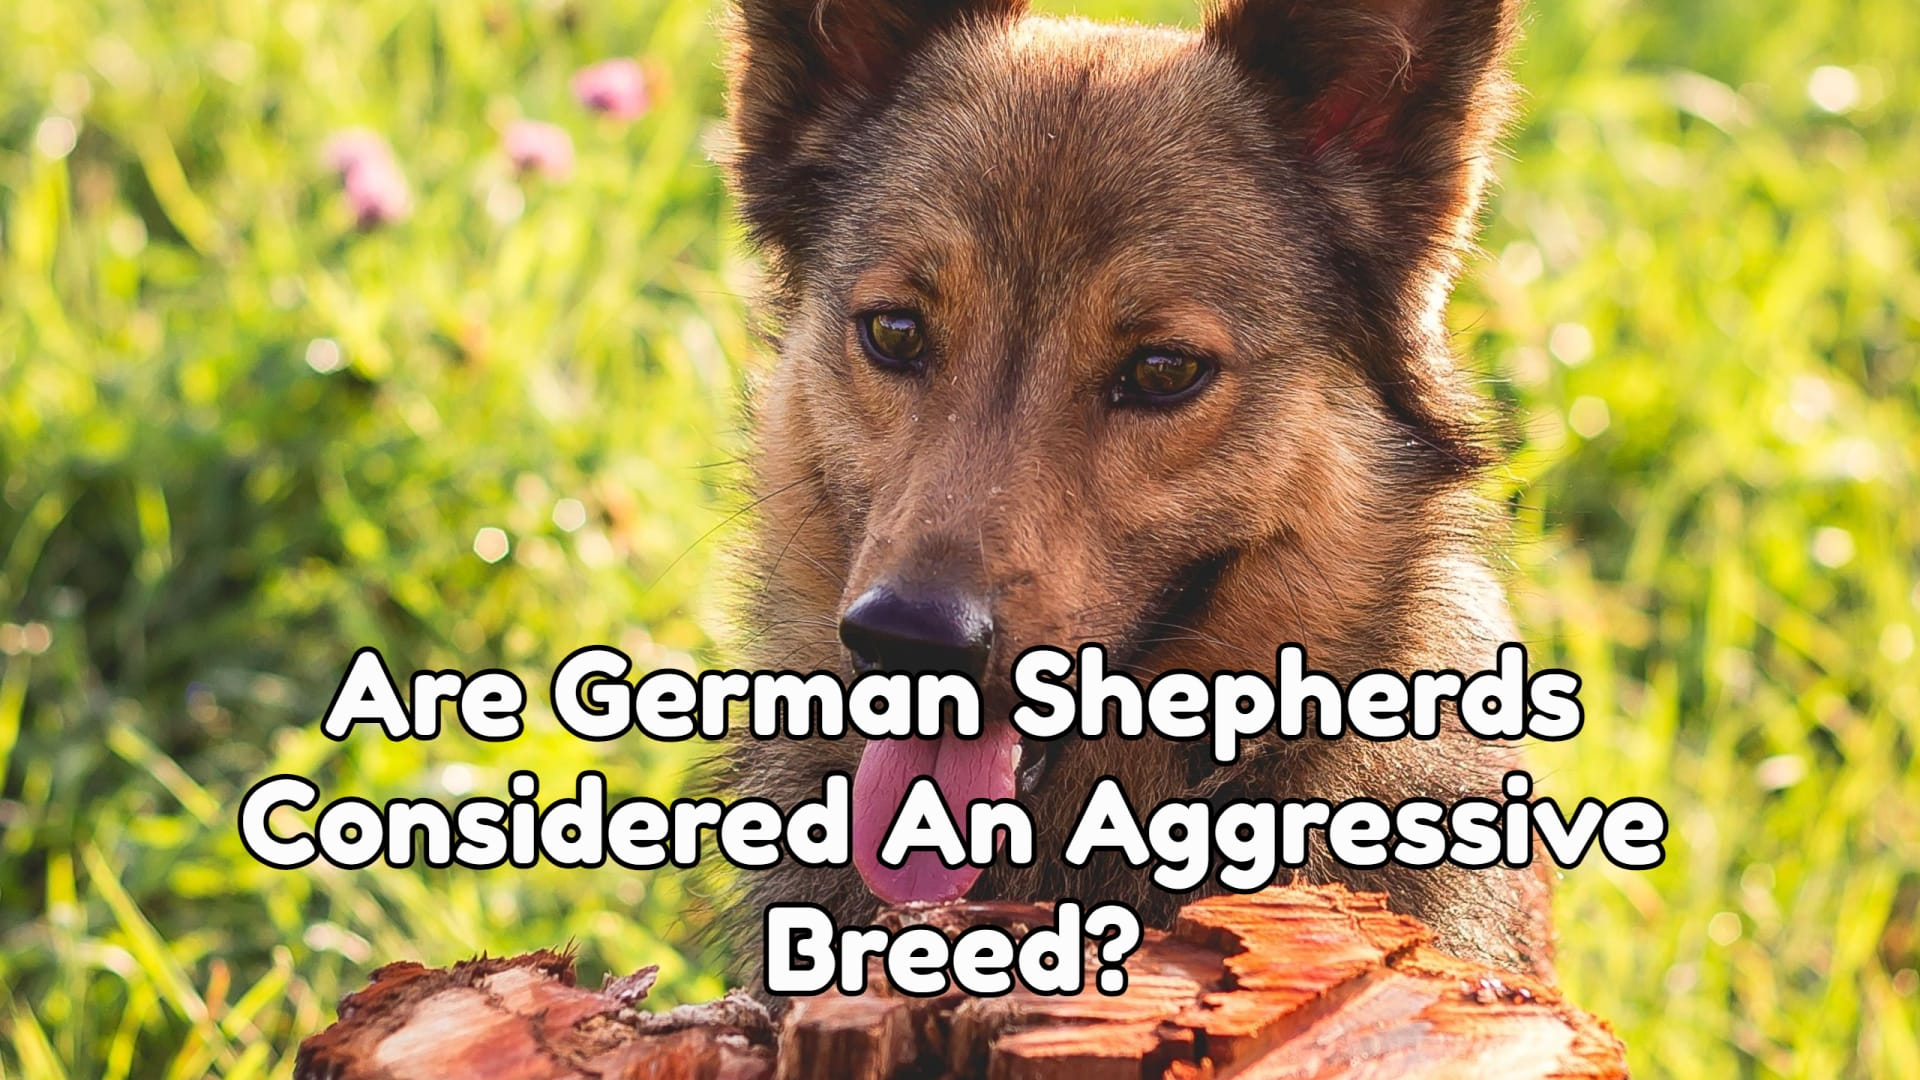 Are German Shepherds Considered An Aggressive Breed